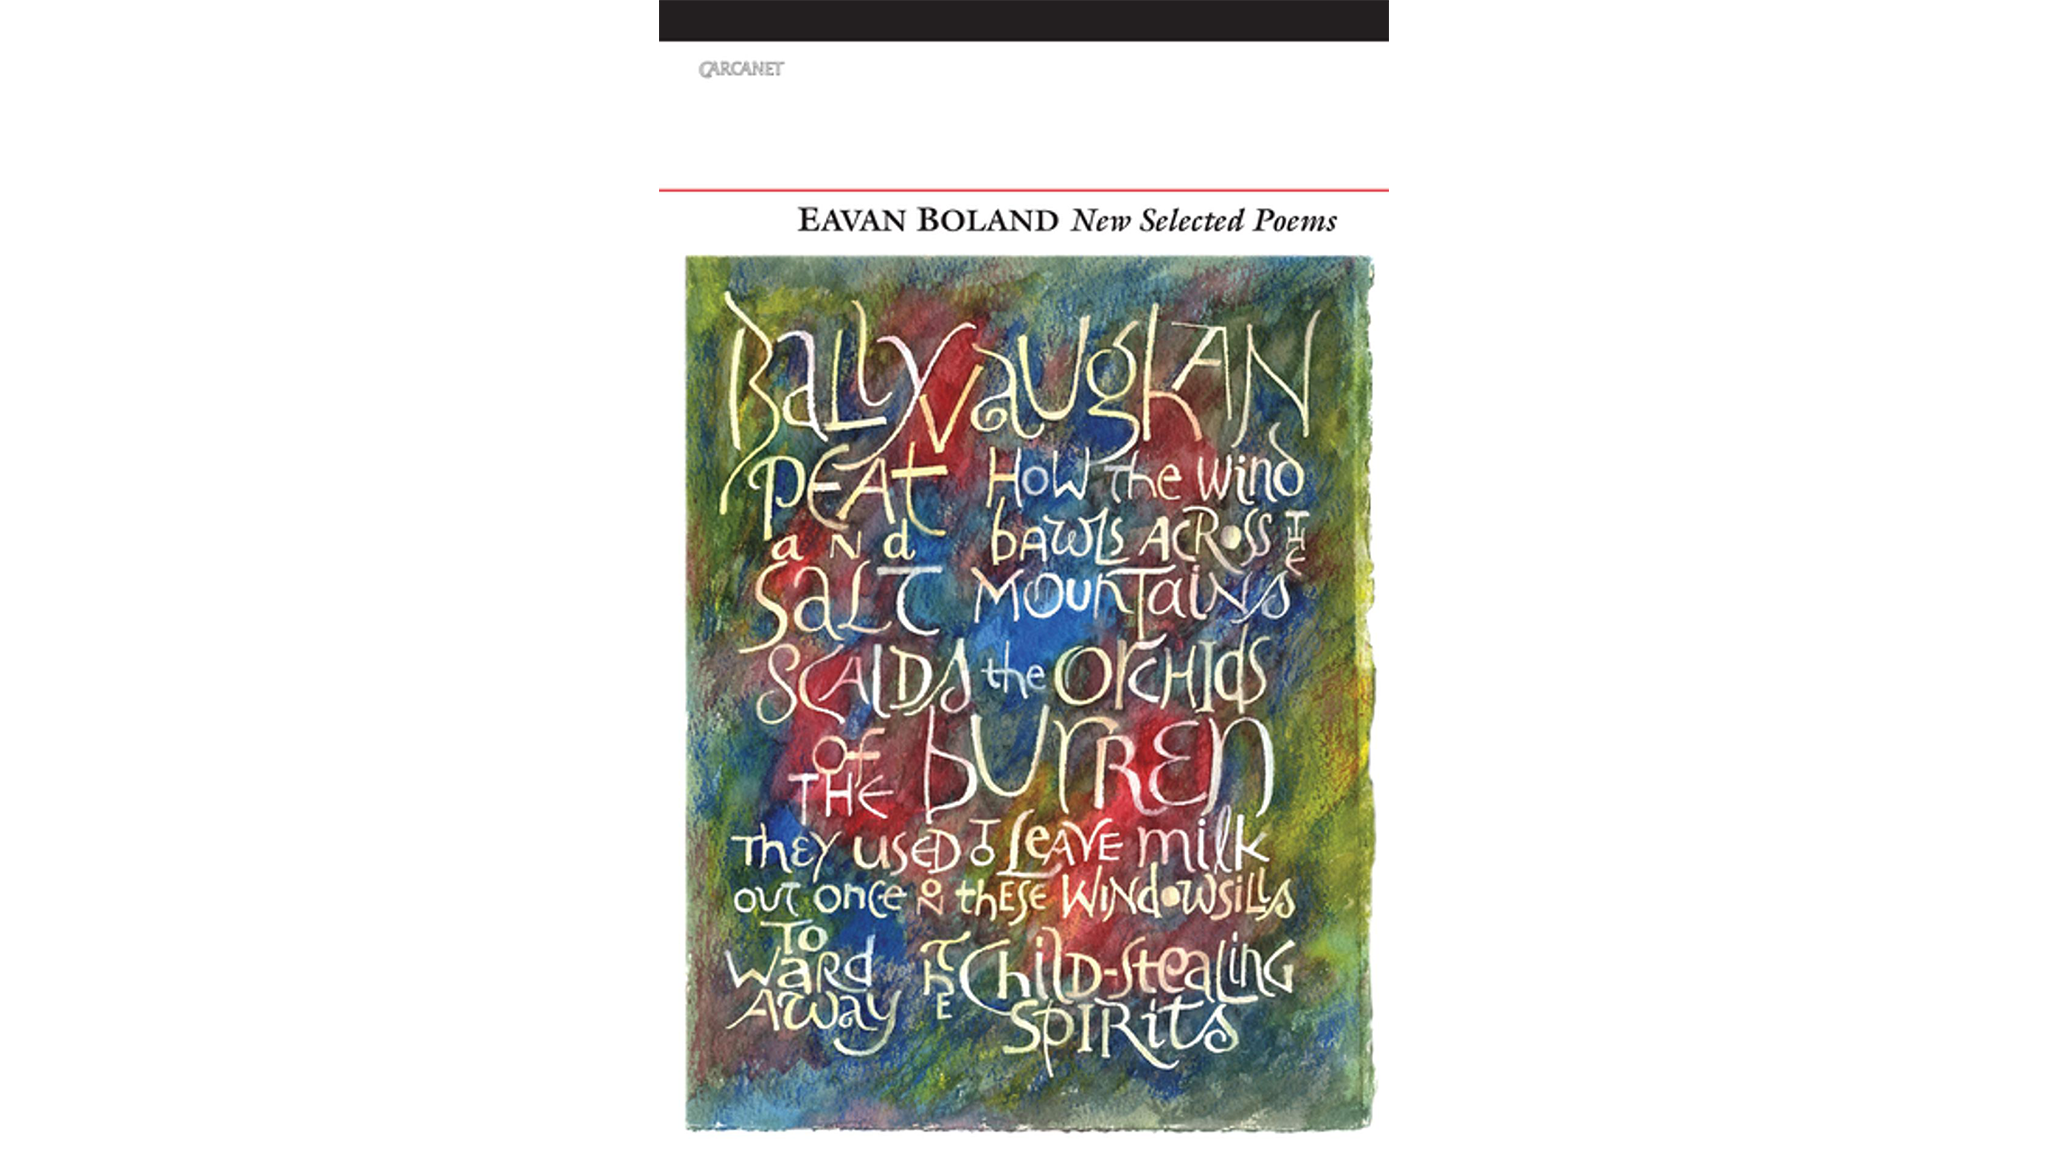 The Poem Irish Poetry By Eavan Boland Financial Times